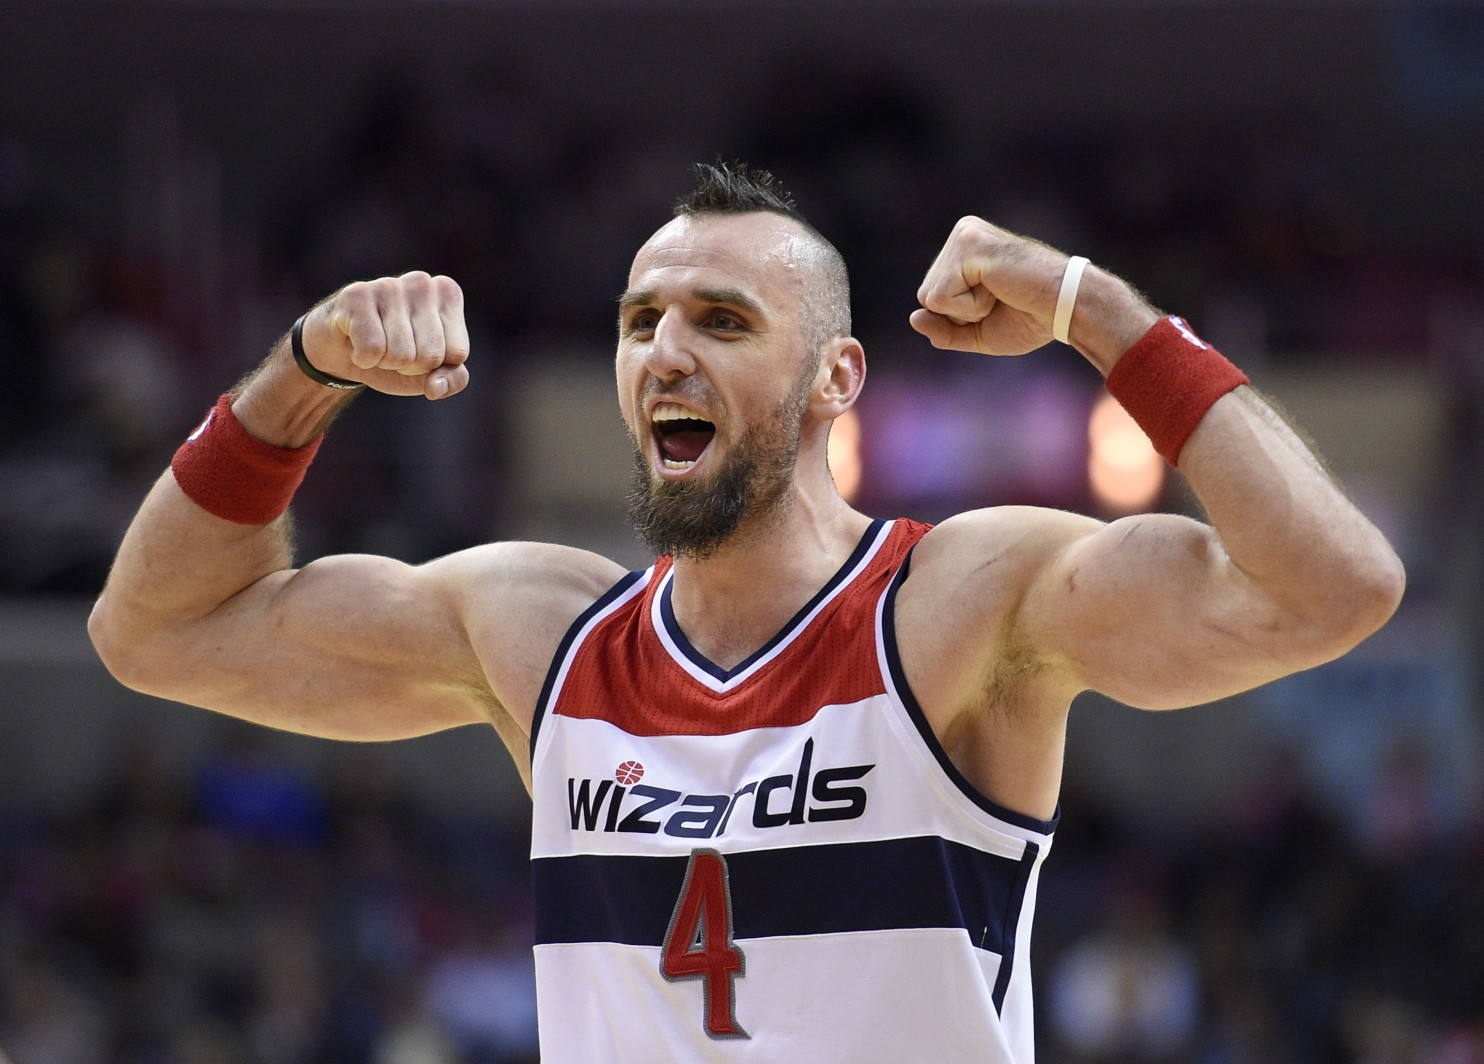 In The Bad Room With Stephen Marcin Gortat Picks Up 3 Women At A Club Amp Takes Them Back